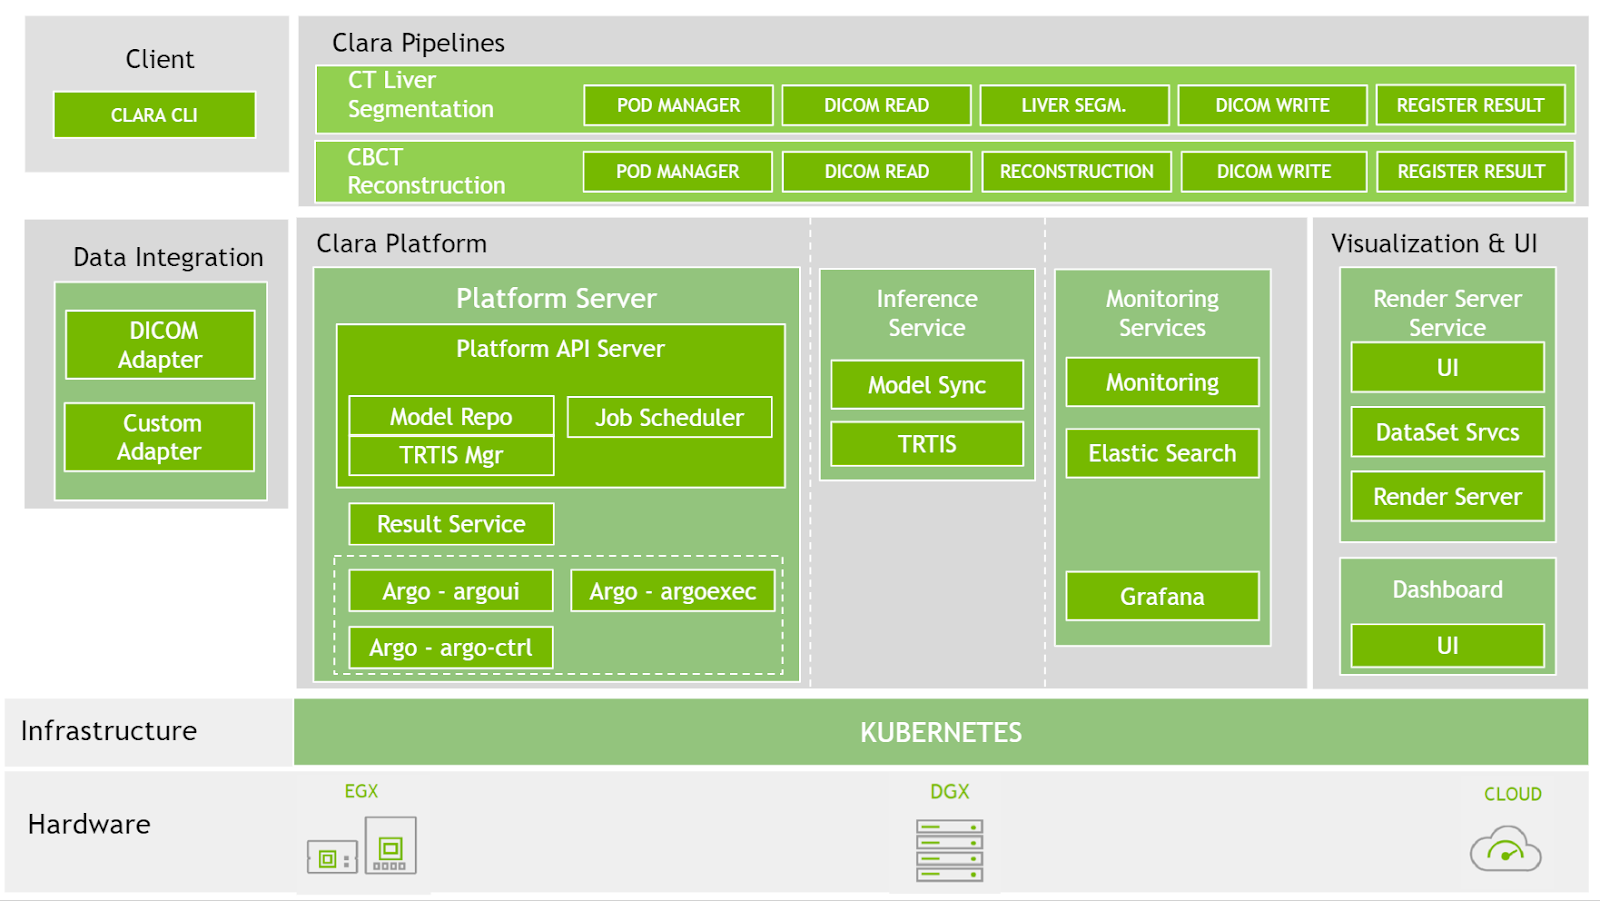 An architecture digram showing the Clara Deploy SDK architecture, describing the services that comprise the SDK: the Clara Platform, Clara Pipelines, Visualization and User Interfaces, Data Integration, and a command-line client.